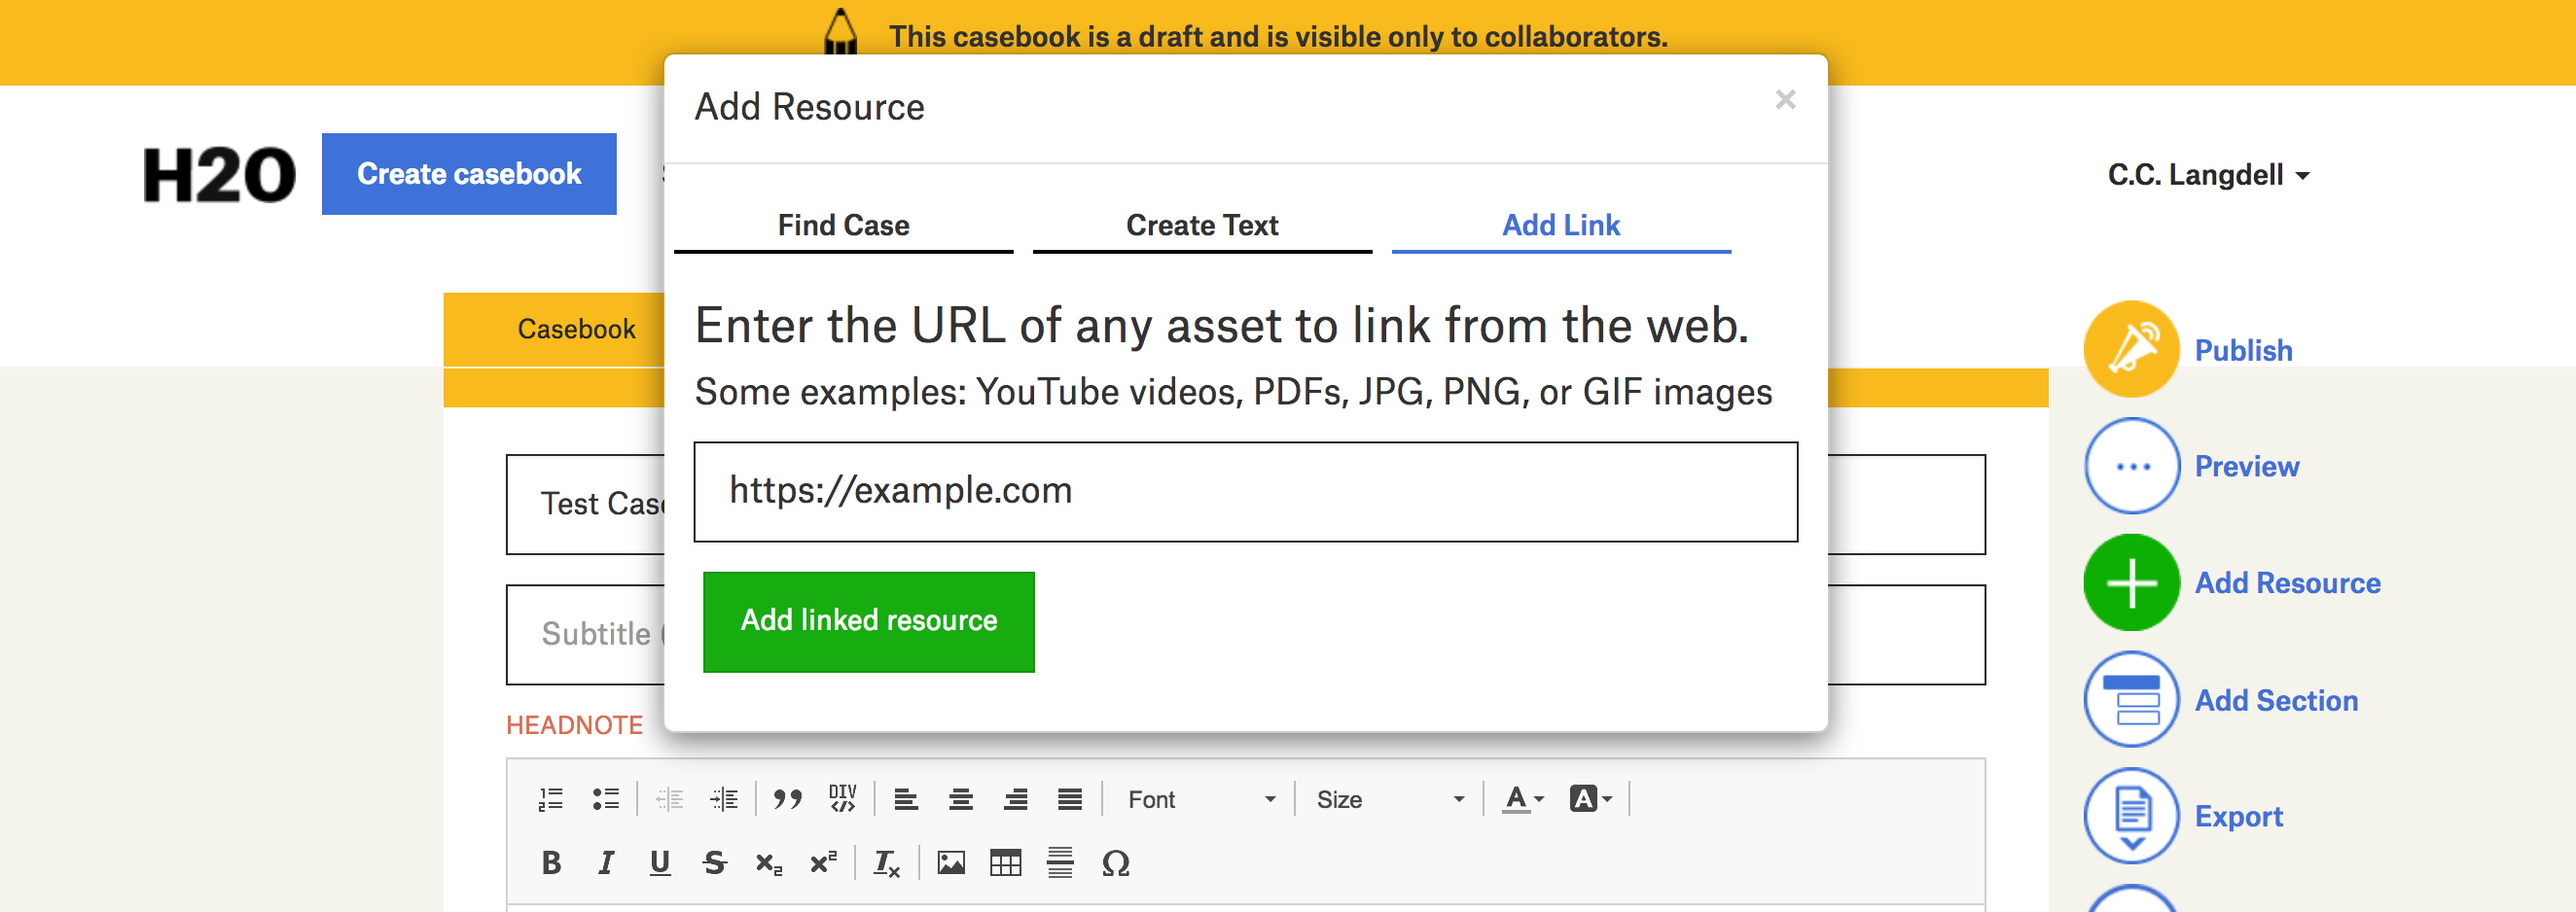 A screenshot of a draft casebook, with the add resource form active, the add link tab active, and an example URL entered.